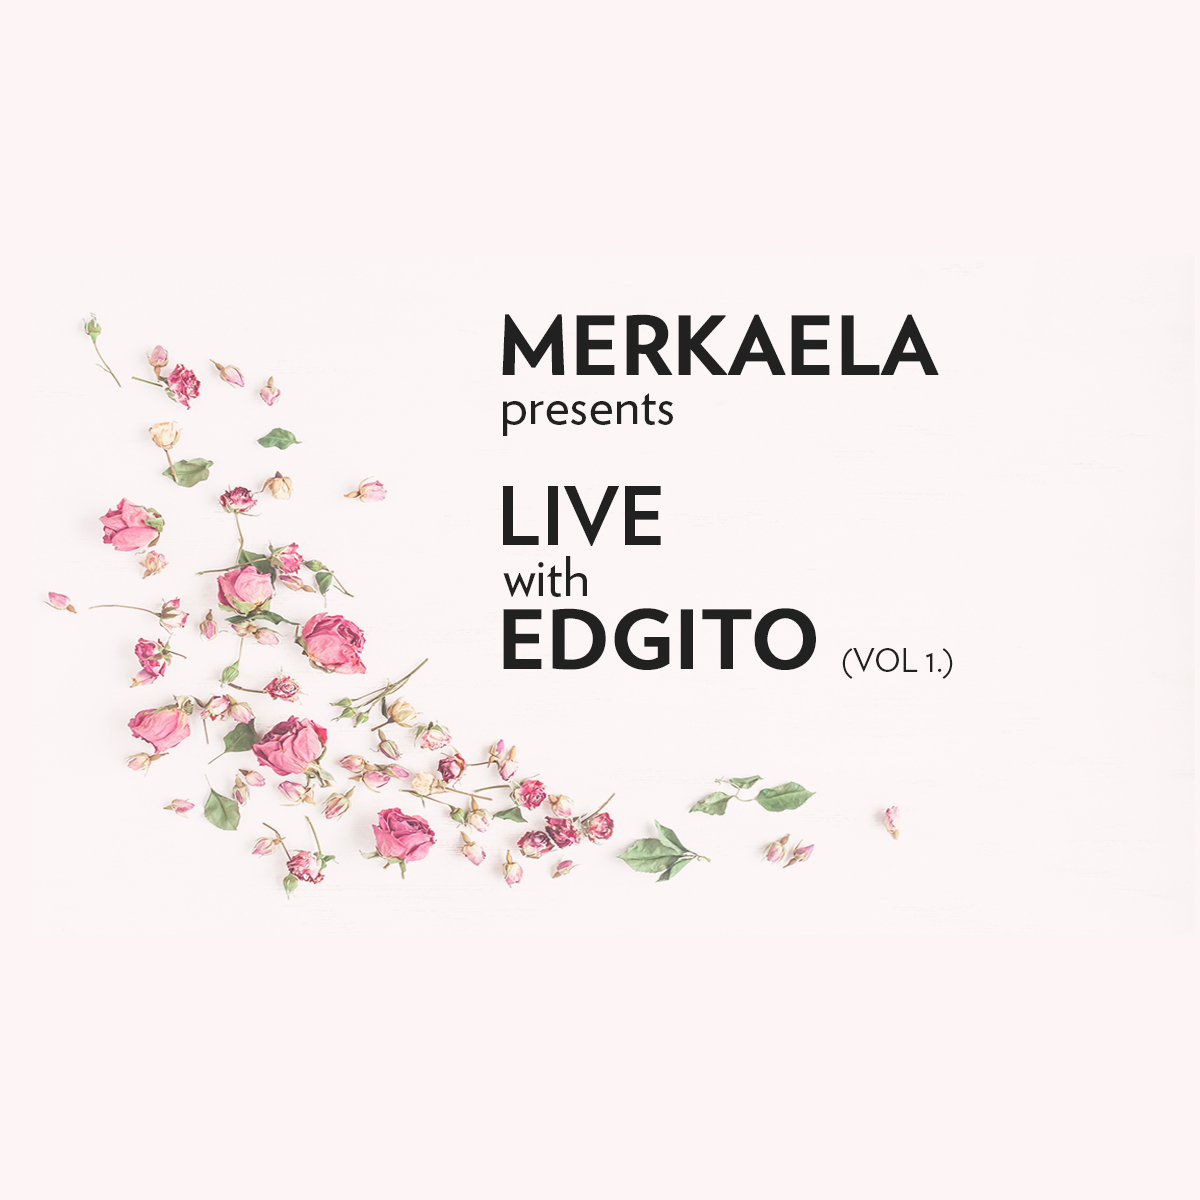 COVER ART FOR   LIVE with EDGITO   Vol. 1